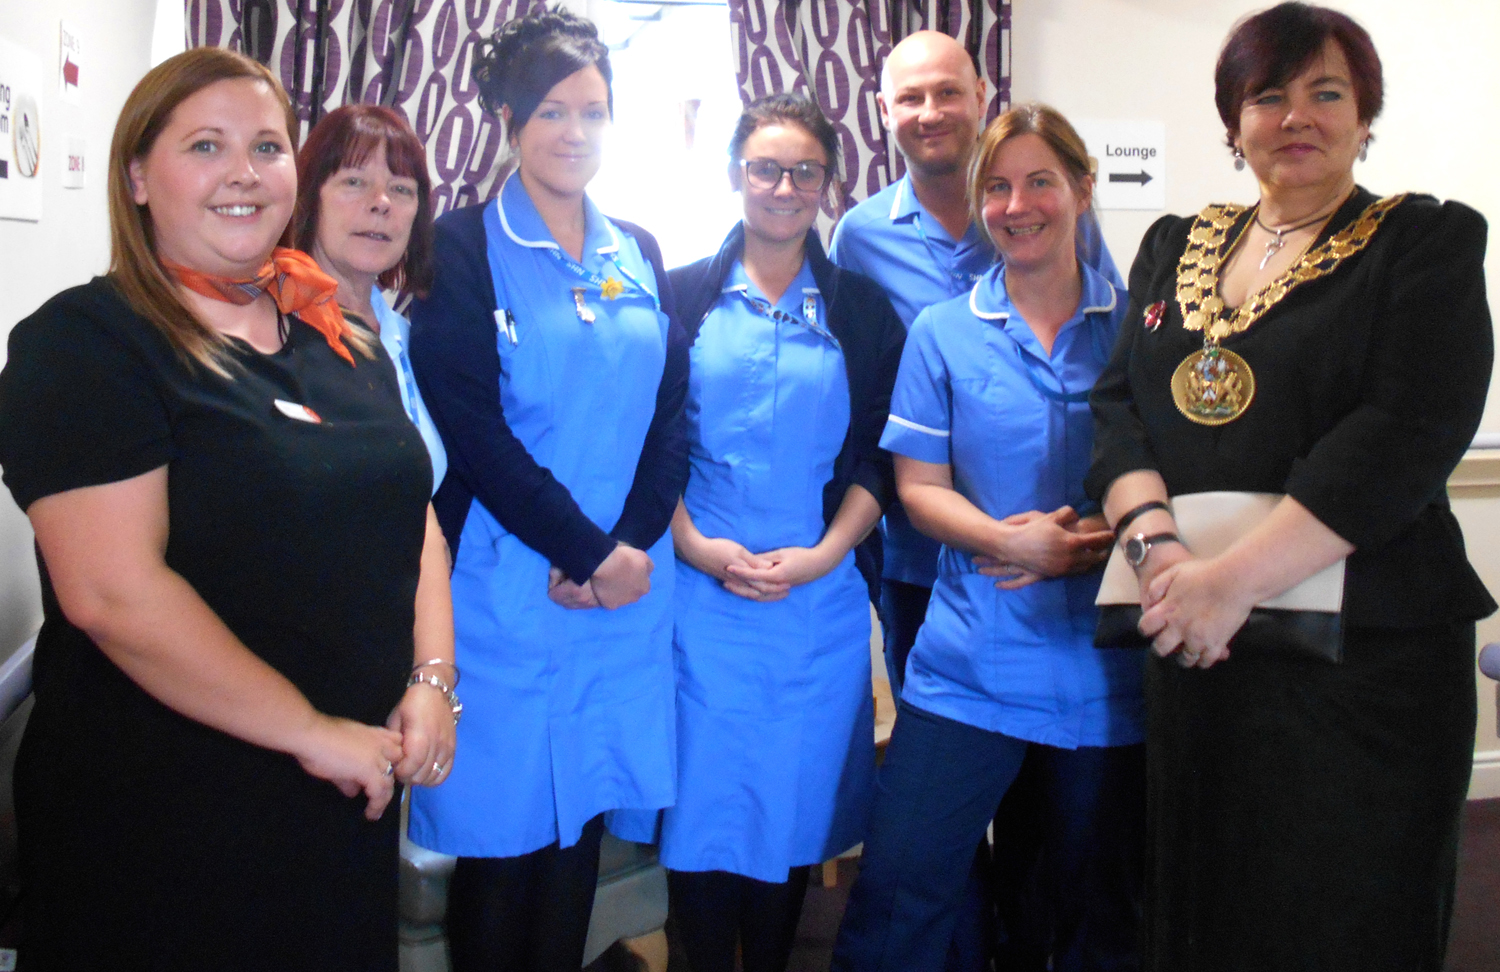 Mayor Joins in Care Home Celebrations